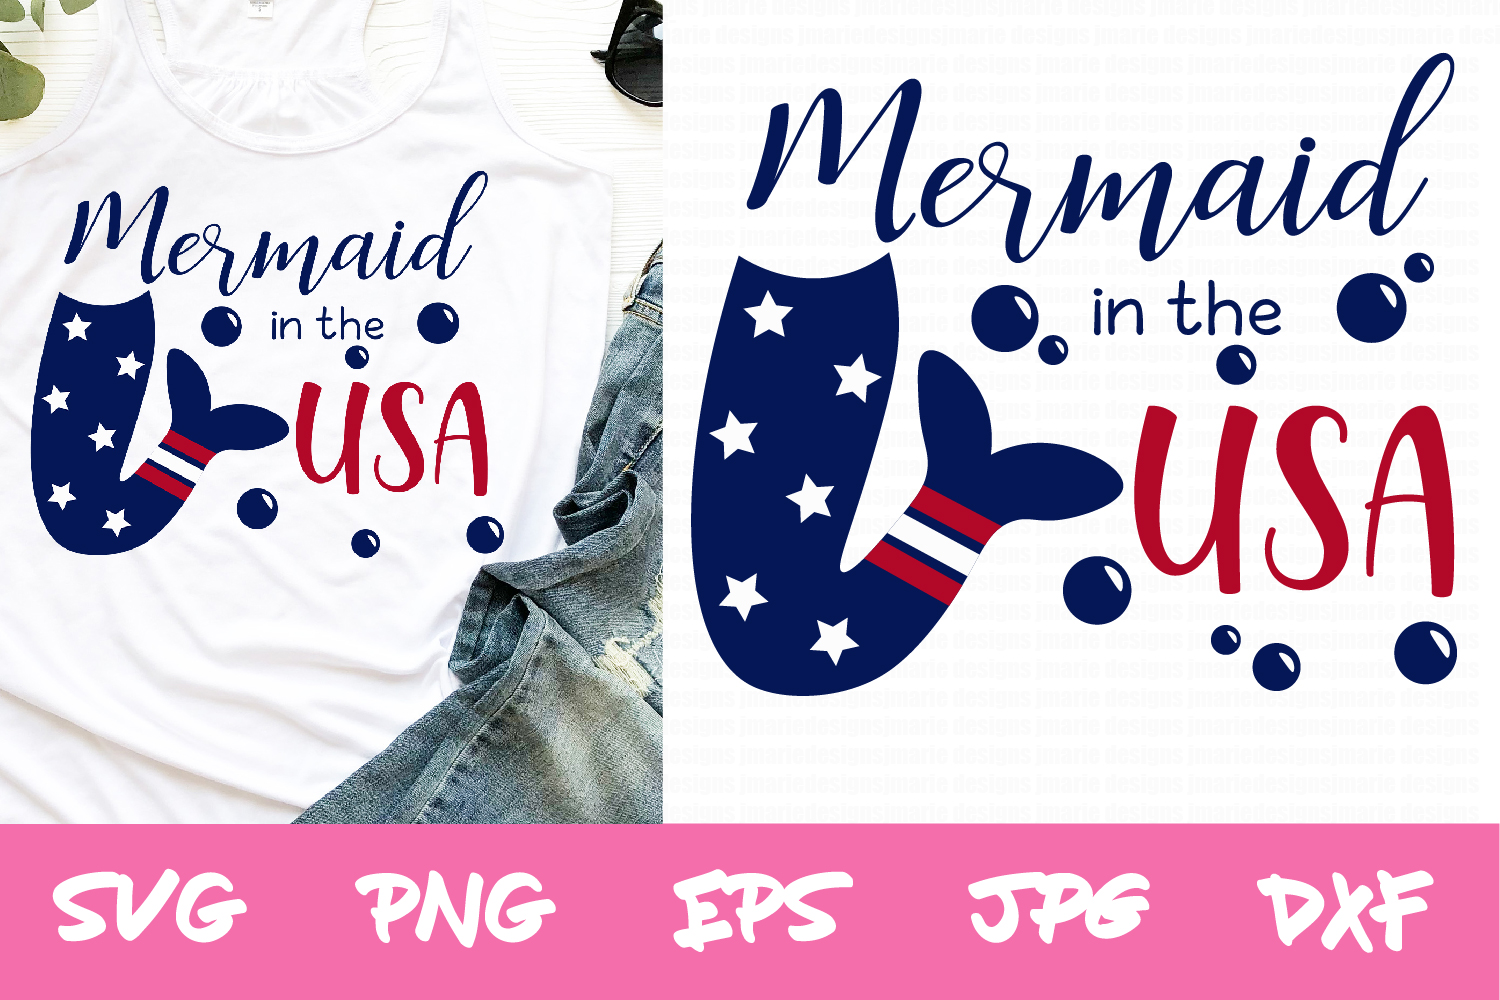 Download Free 4th Of July Summer Mermaid Svg Files Graphic By Thejaemarie for Cricut Explore, Silhouette and other cutting machines.